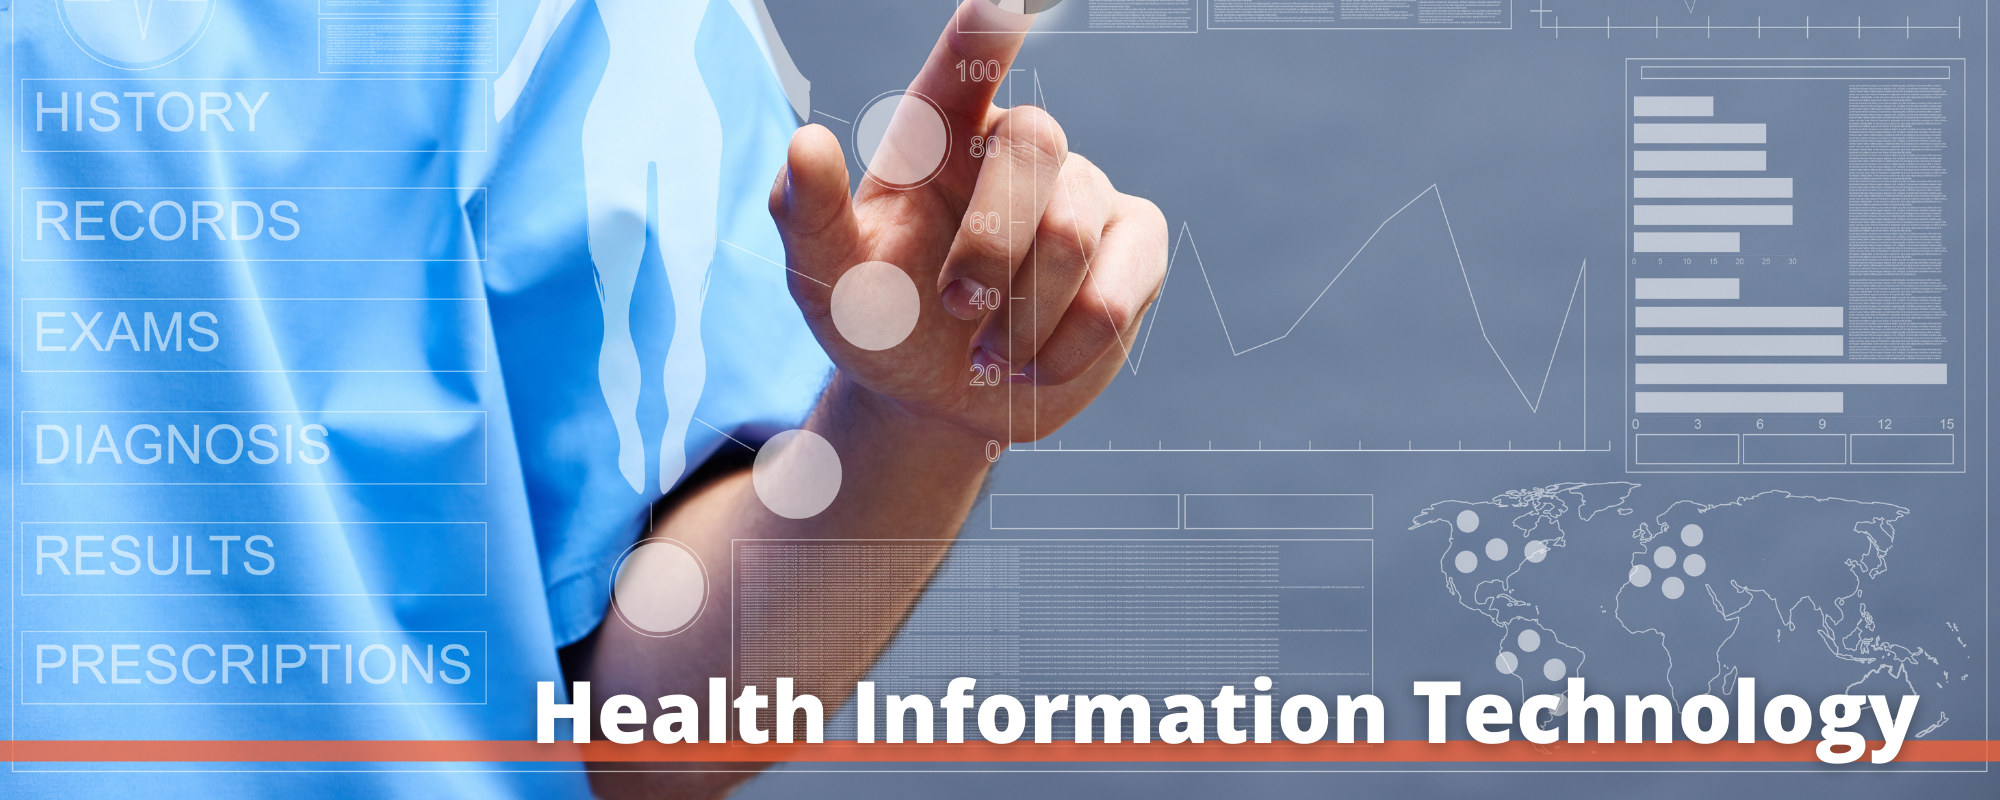 """Image of a person in blue scrubs interacting with graphs of data with the words """"Health Information Technology"""" printed below"""